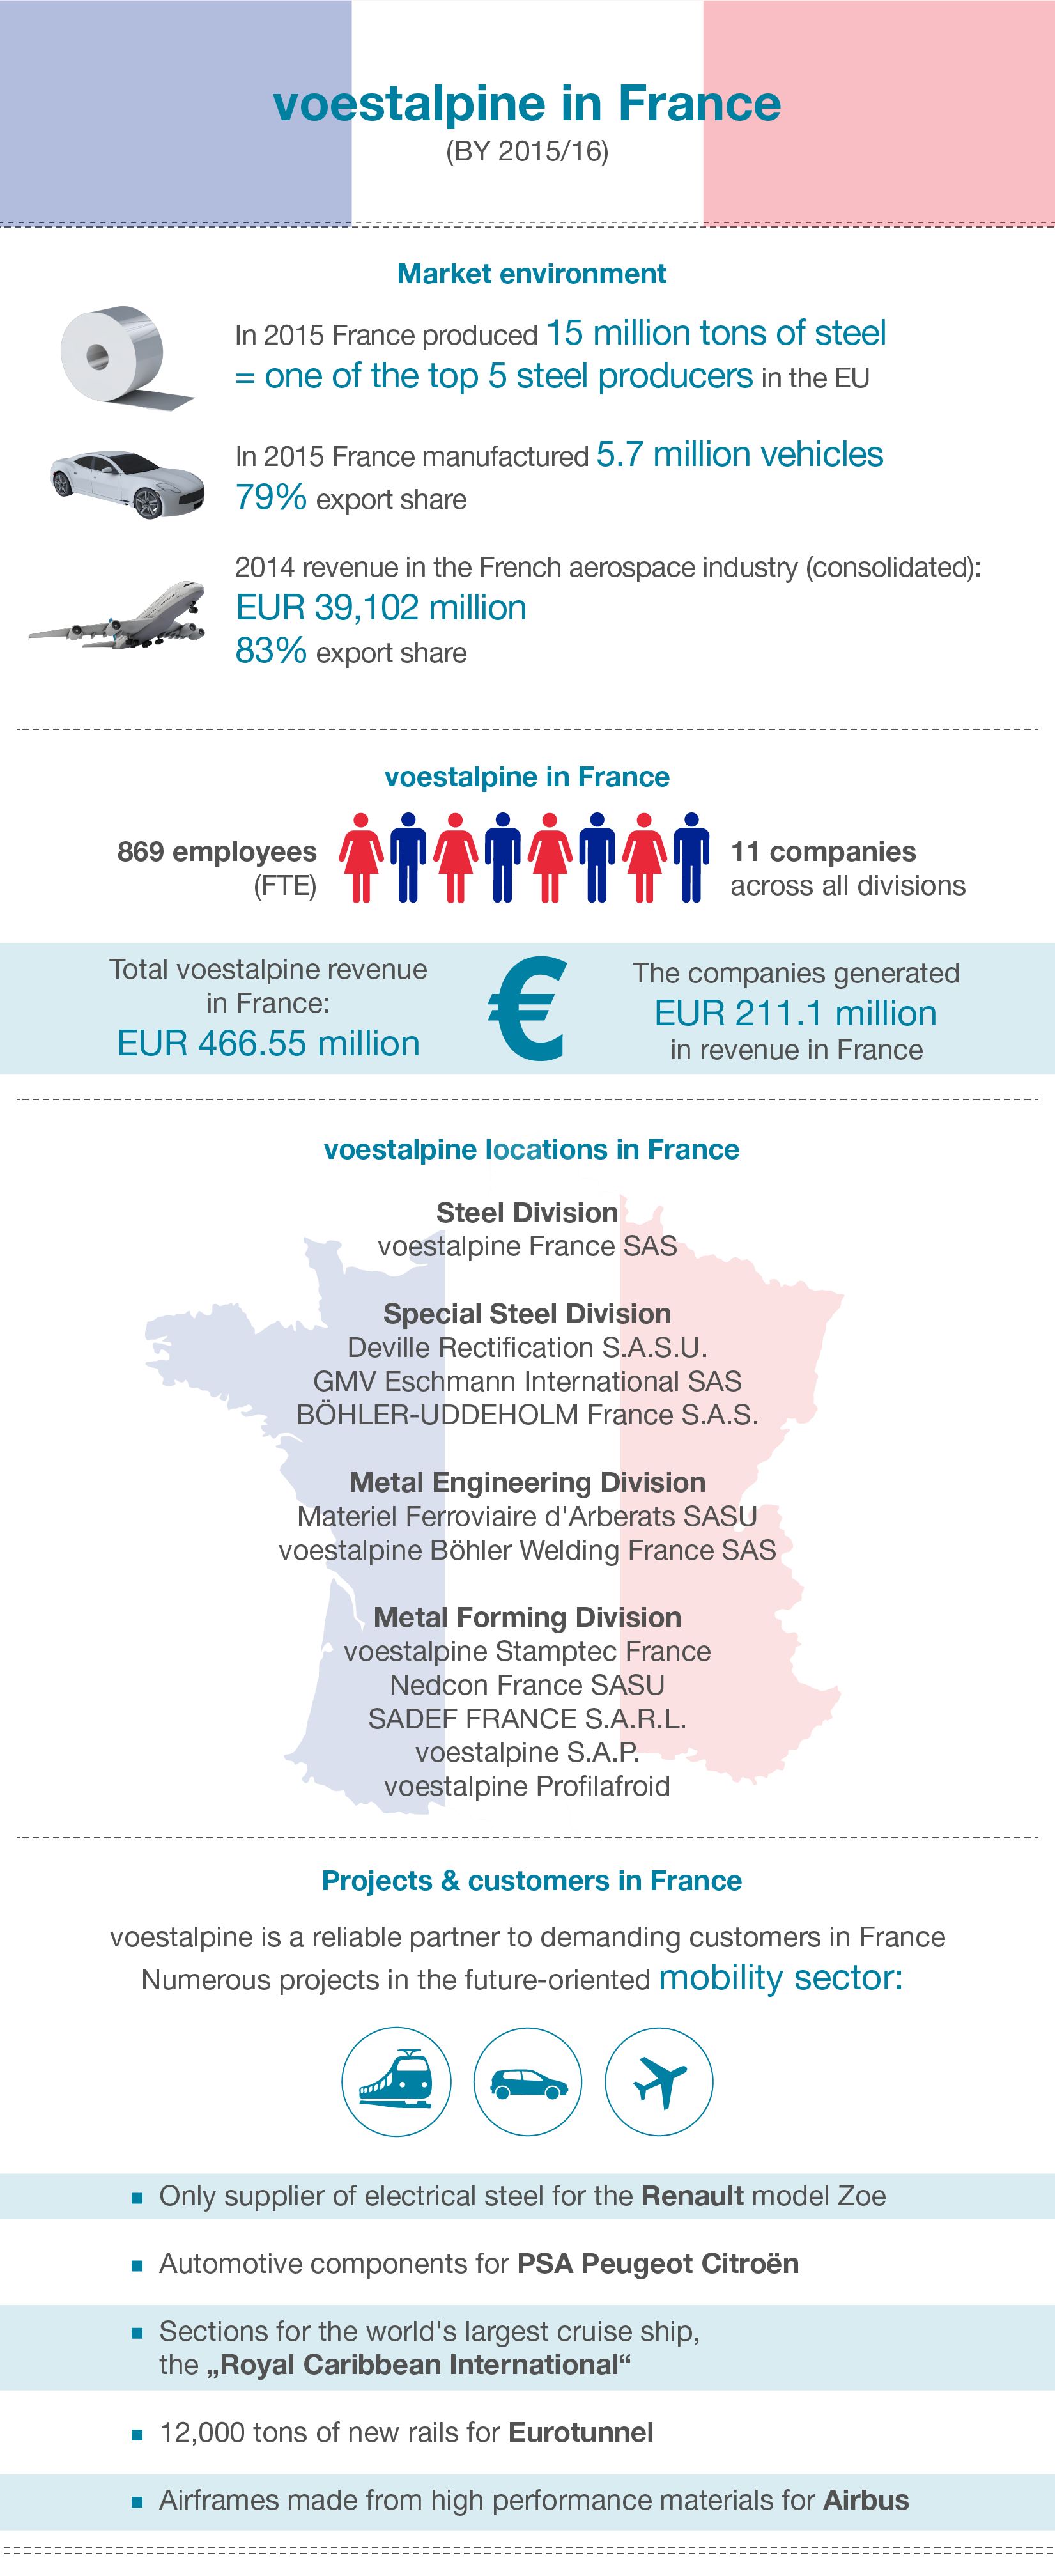 voestalpine in France